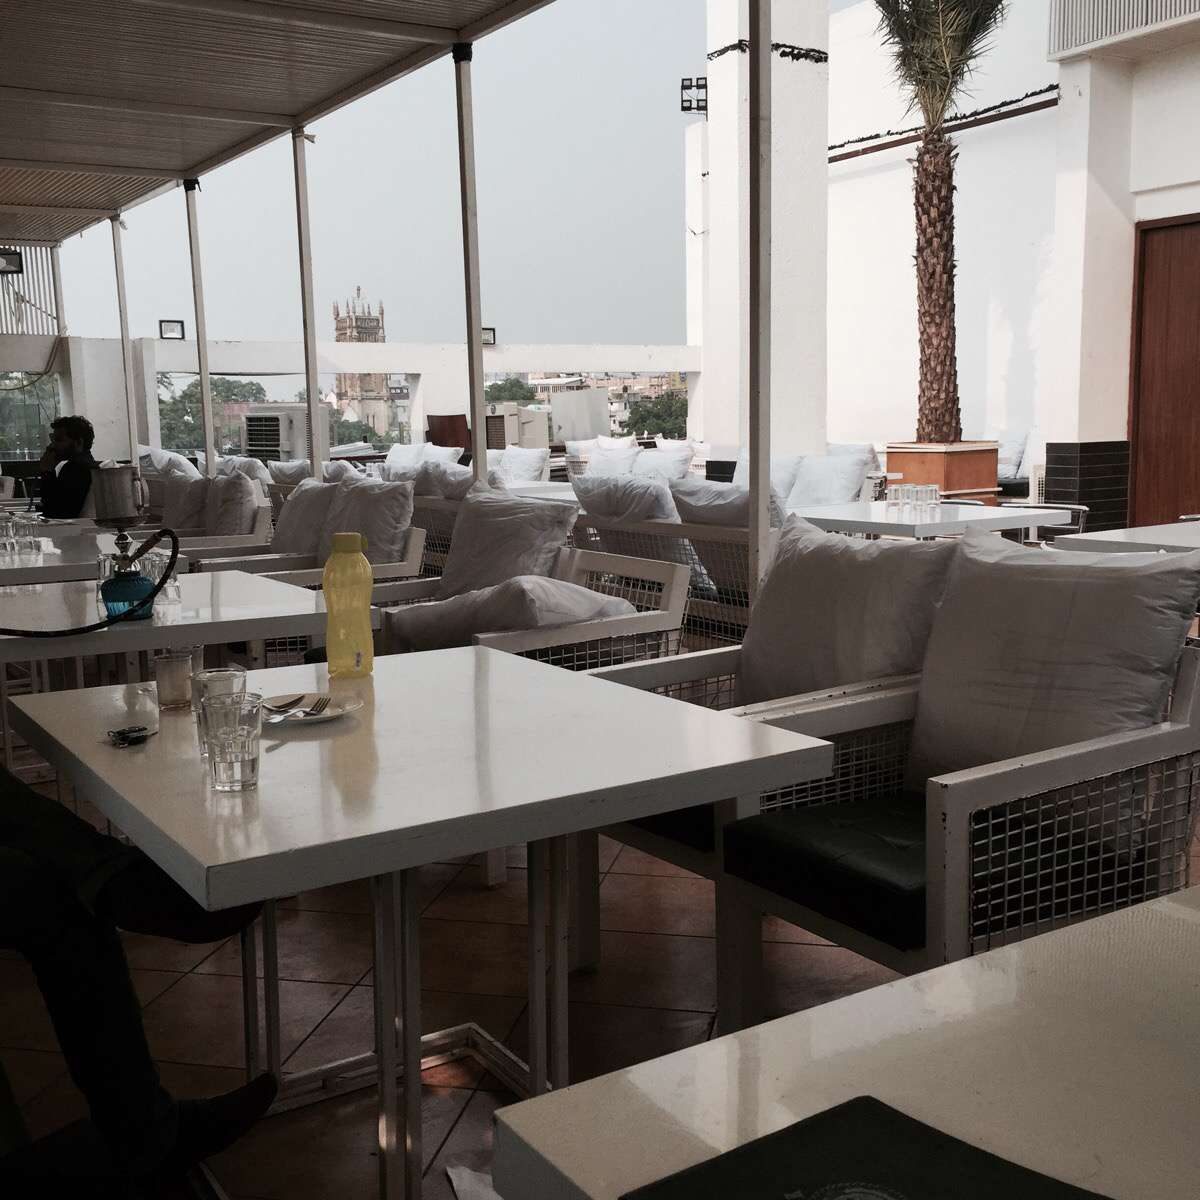 Nagpur, Romantic Date, Restaurants, Dating In Nagpur, Fine Dining